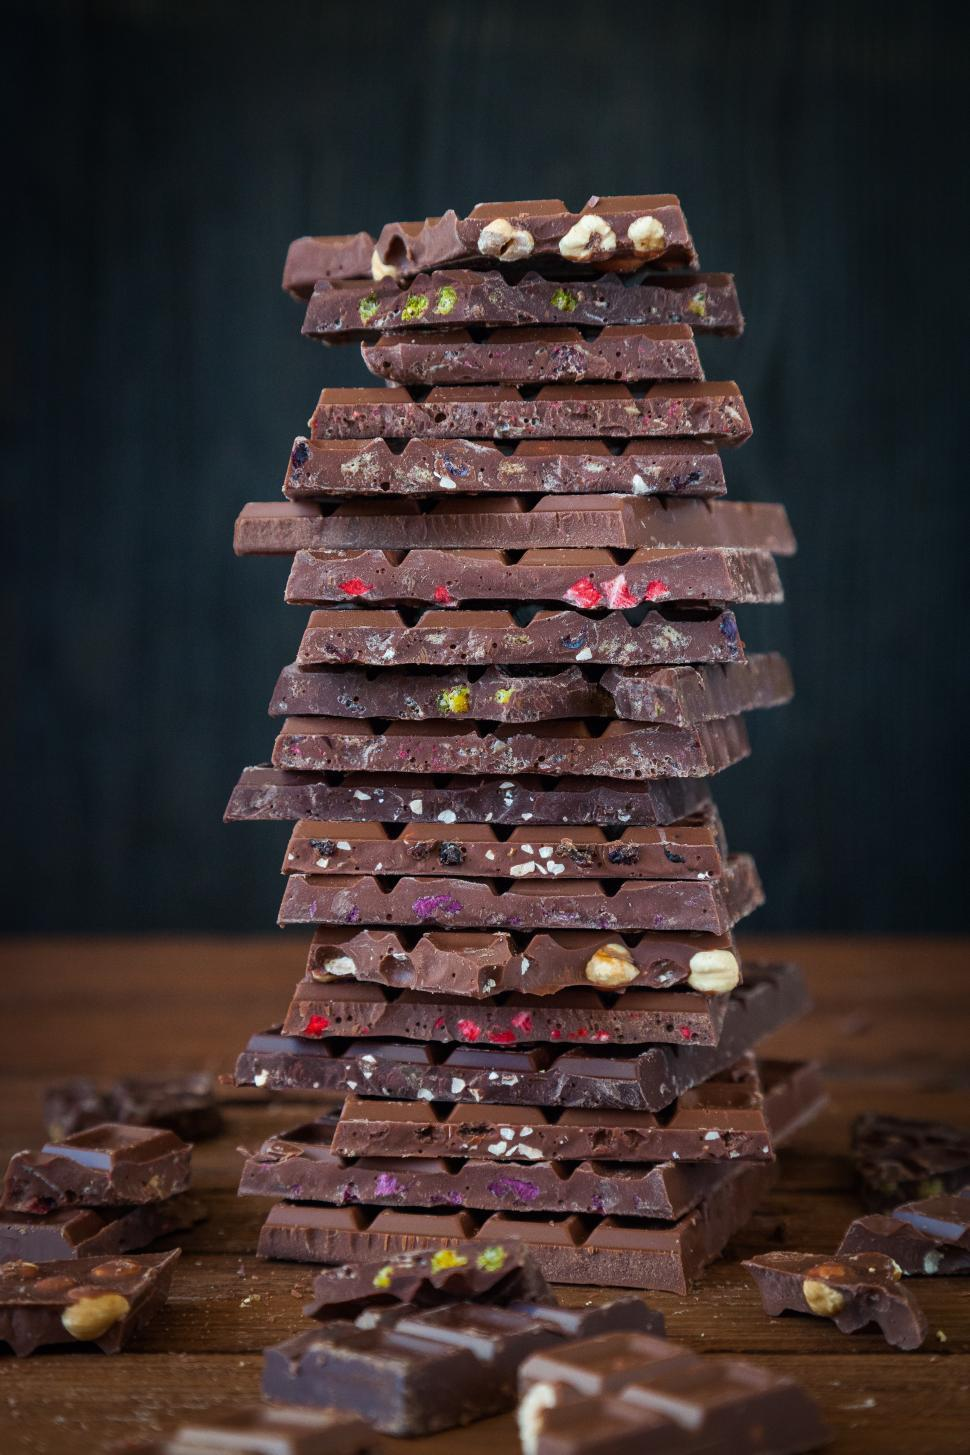 Download Free Stock HD Photo of Close up of stack of broken chocolate bars Online